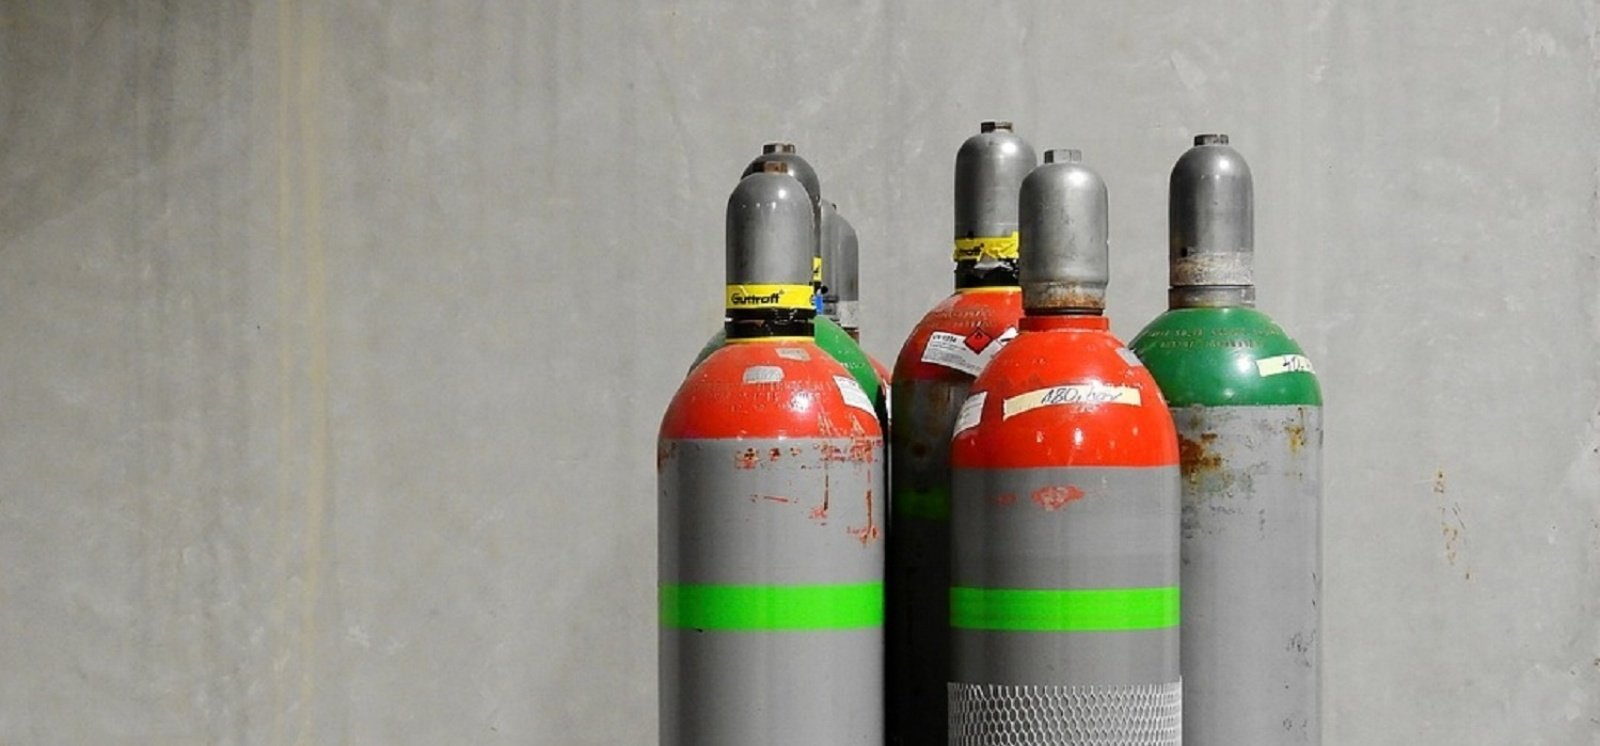 5 Hazards of Transporting Gas Bottles